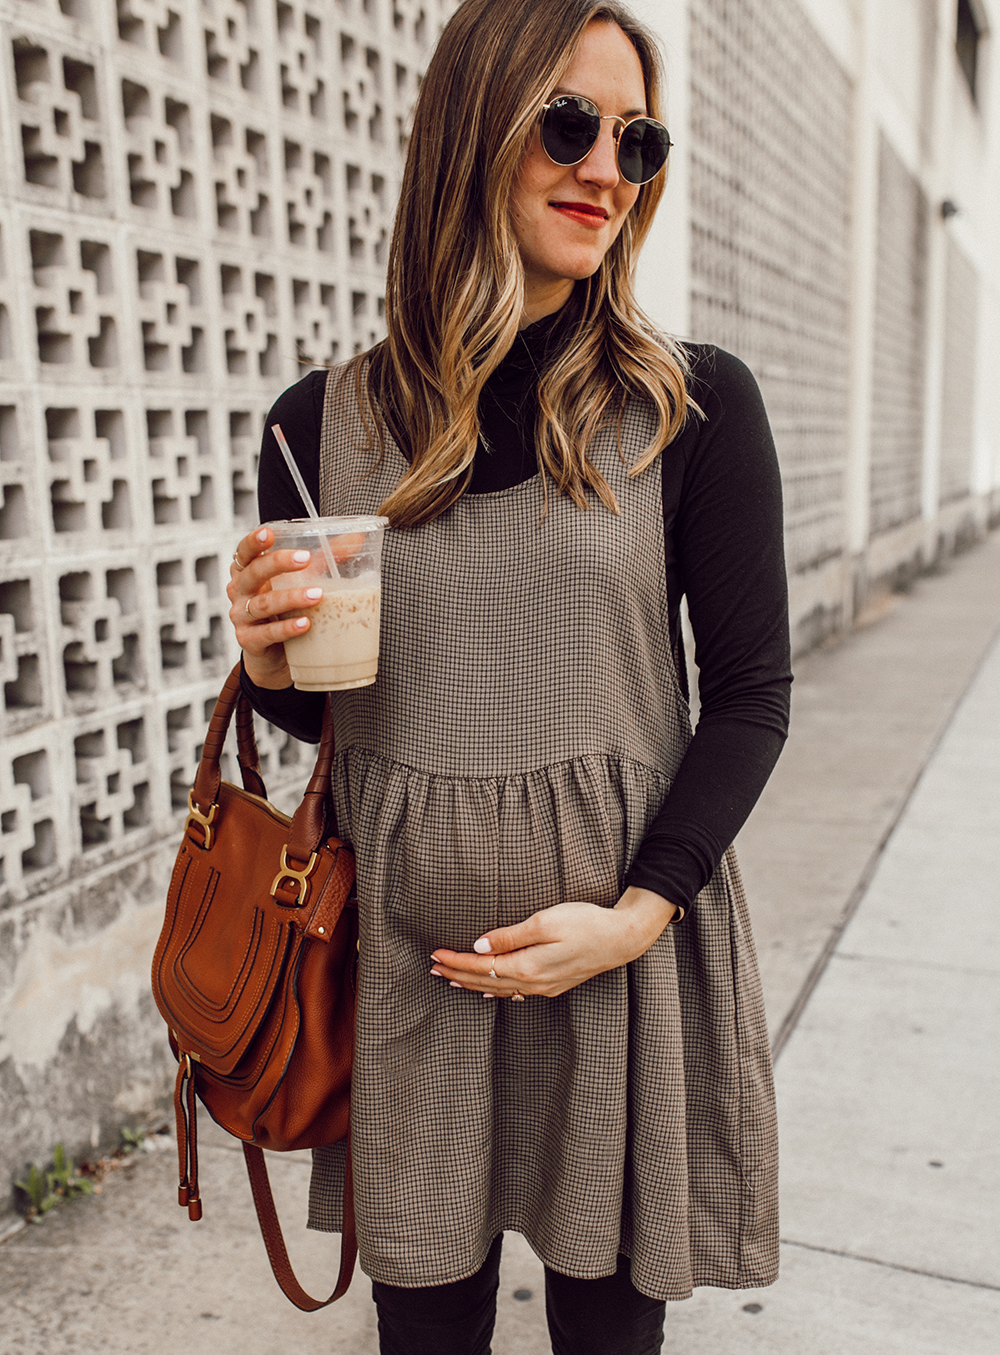 livvyland-blog-olivia-watson-austin-texas-third-trimester-pregnancy-maternity-outfit-idea-chloe-marcie-medium-4